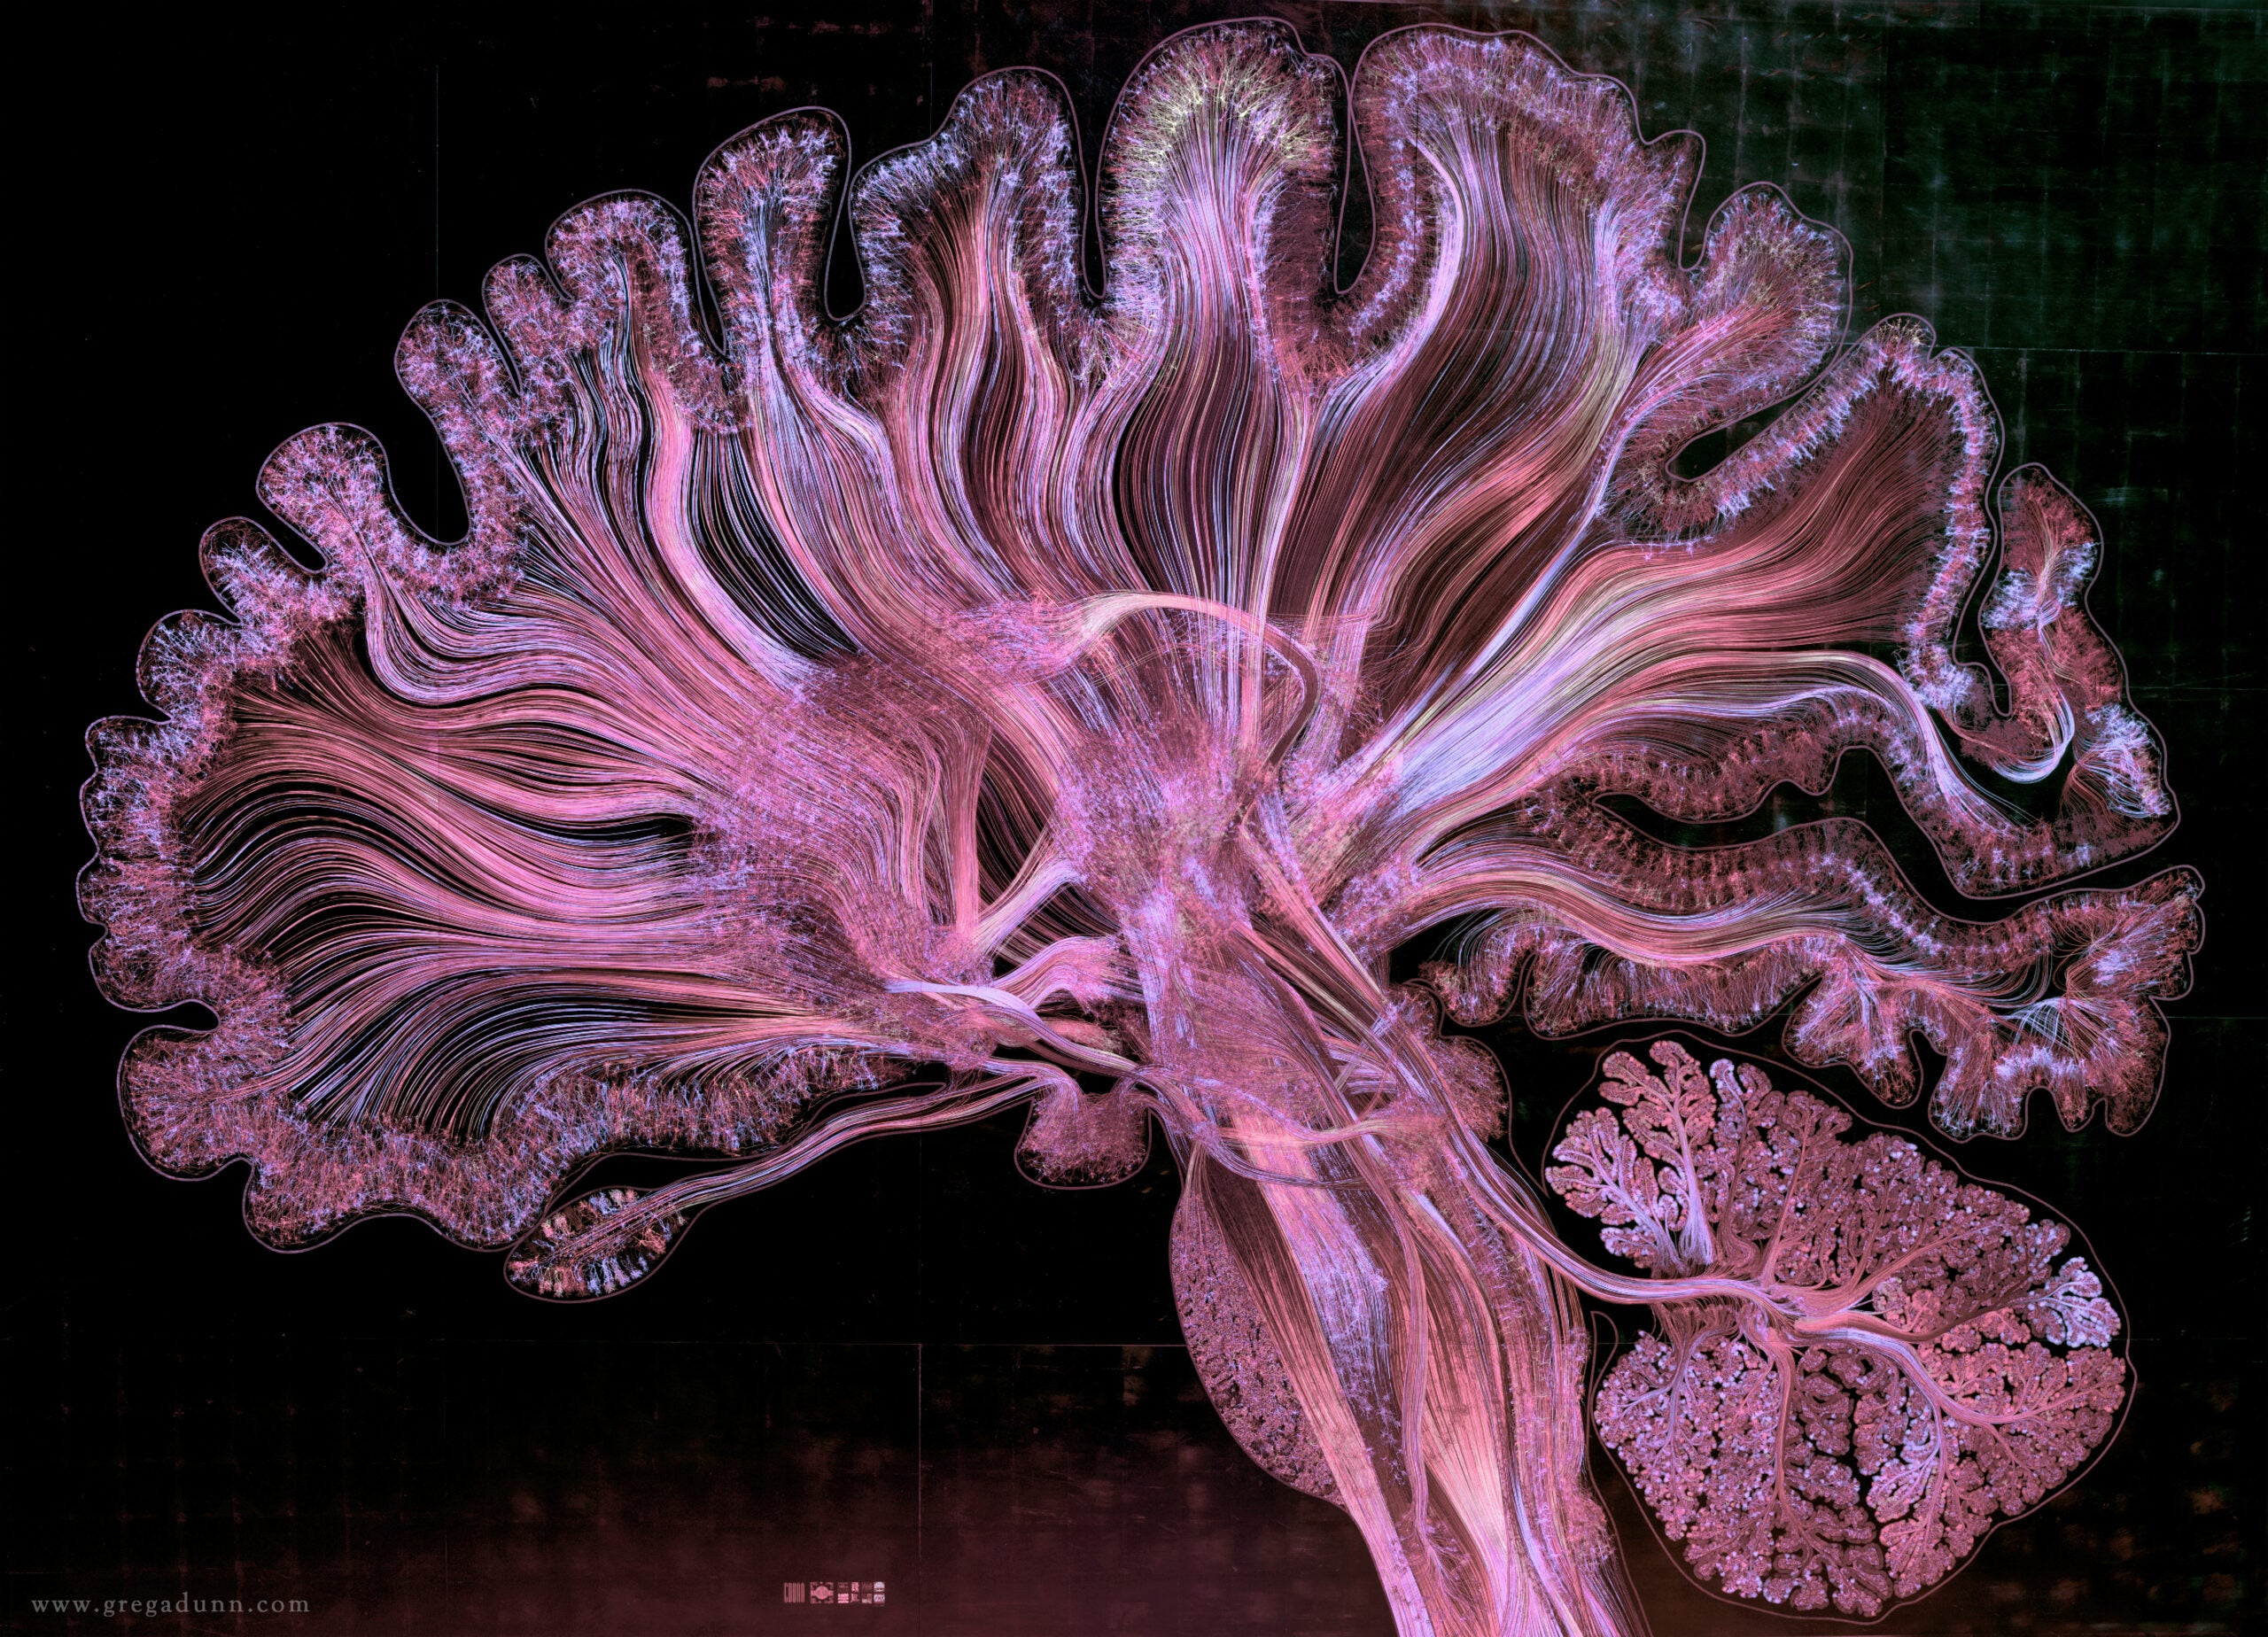 Human brain illustration | Vizzies winner